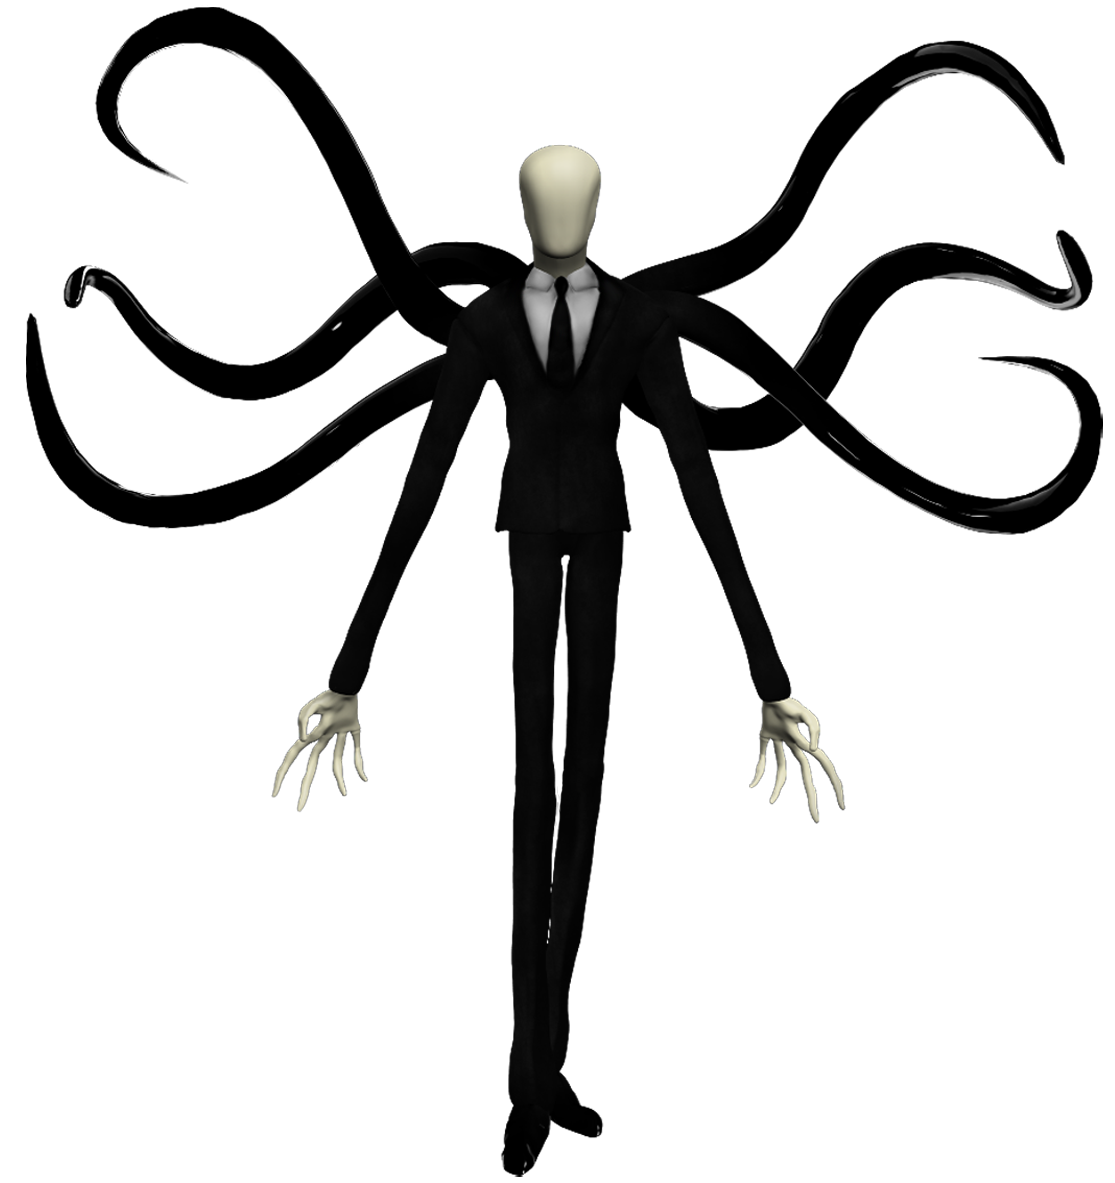 Drawn slender man cartoon Slender Slender png slender_man man